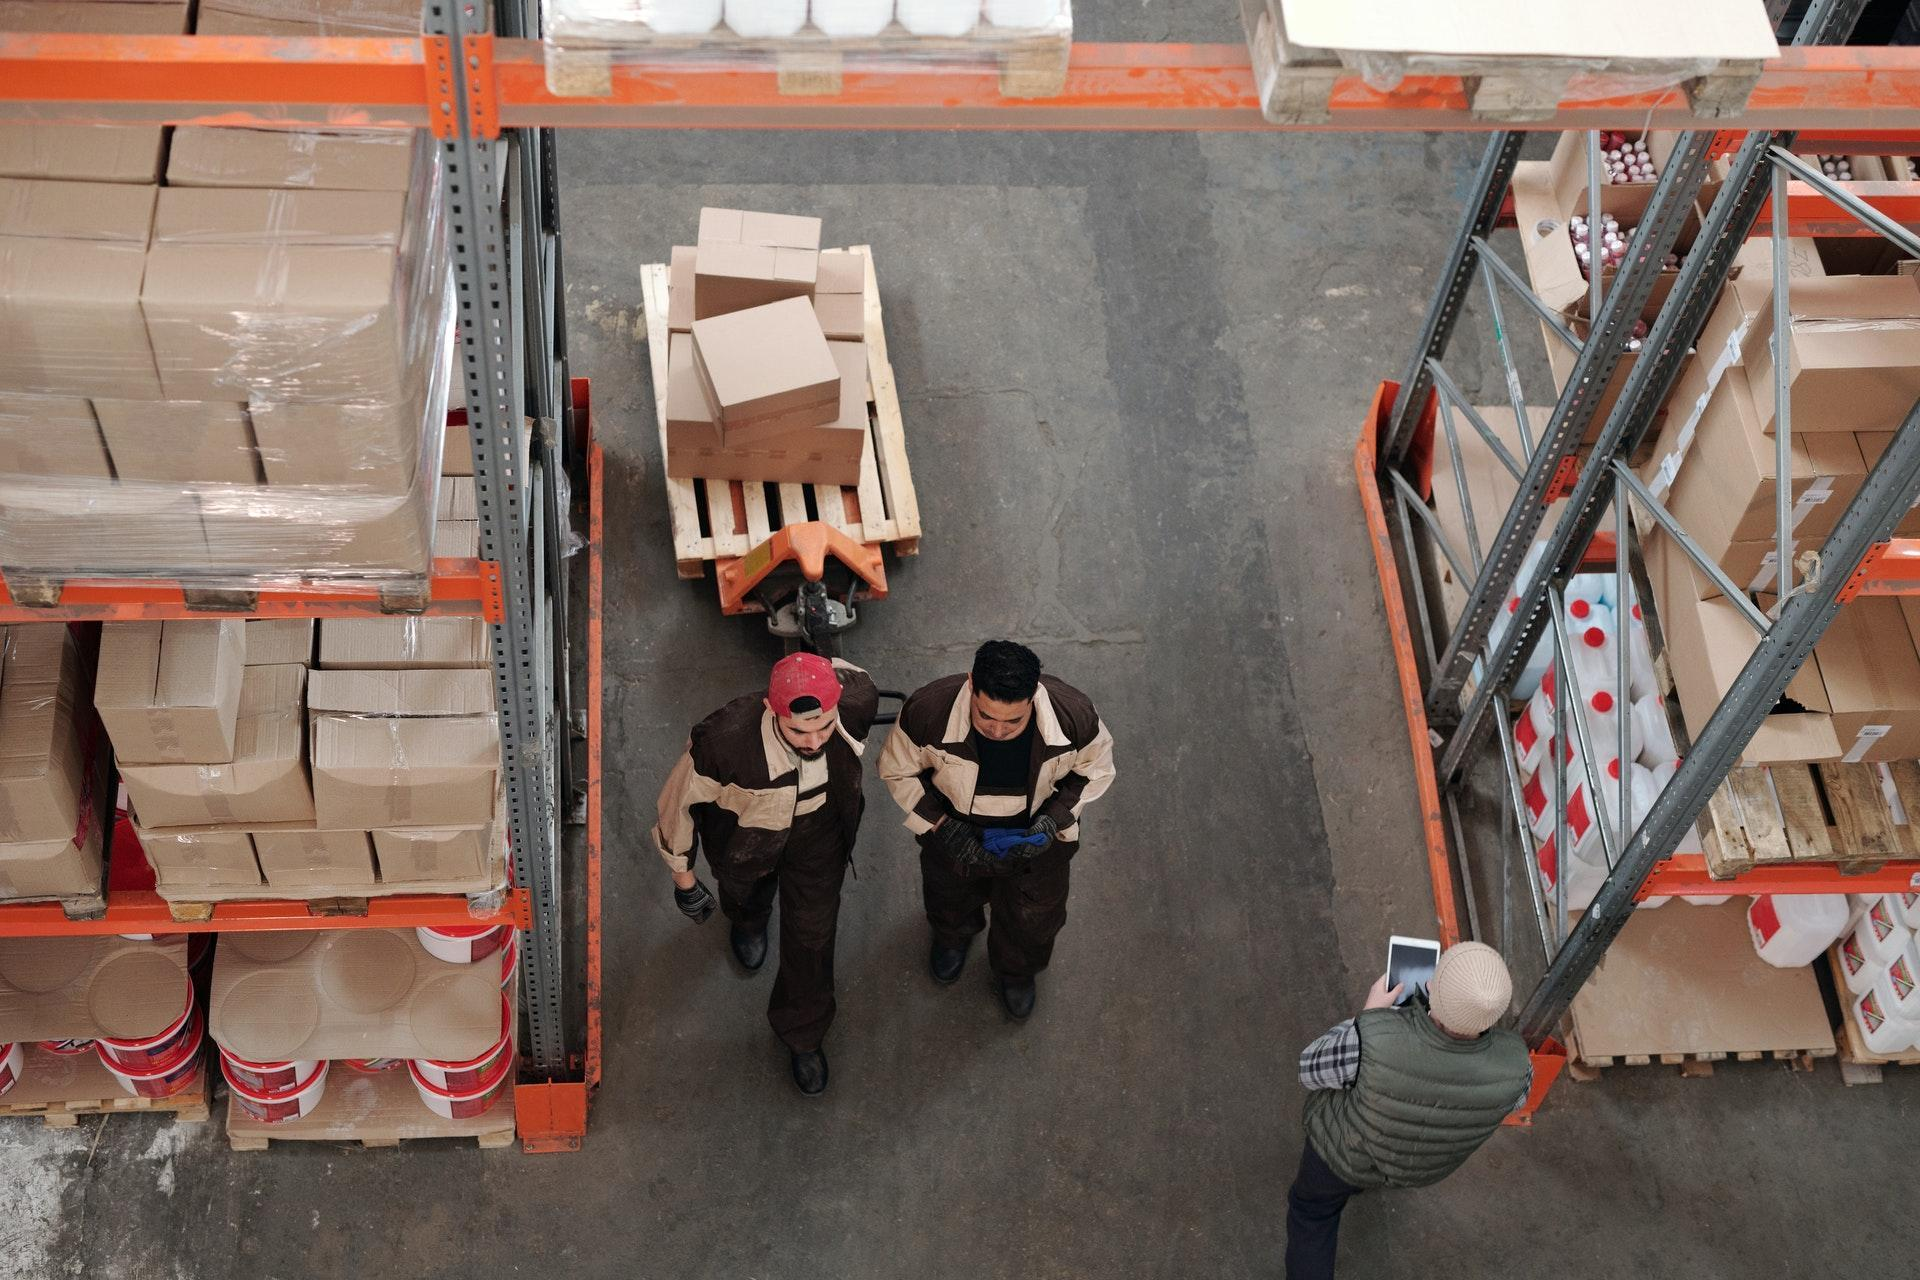 Two men in a warehouse fulfilling dropshipping orders for an ecommerce store.